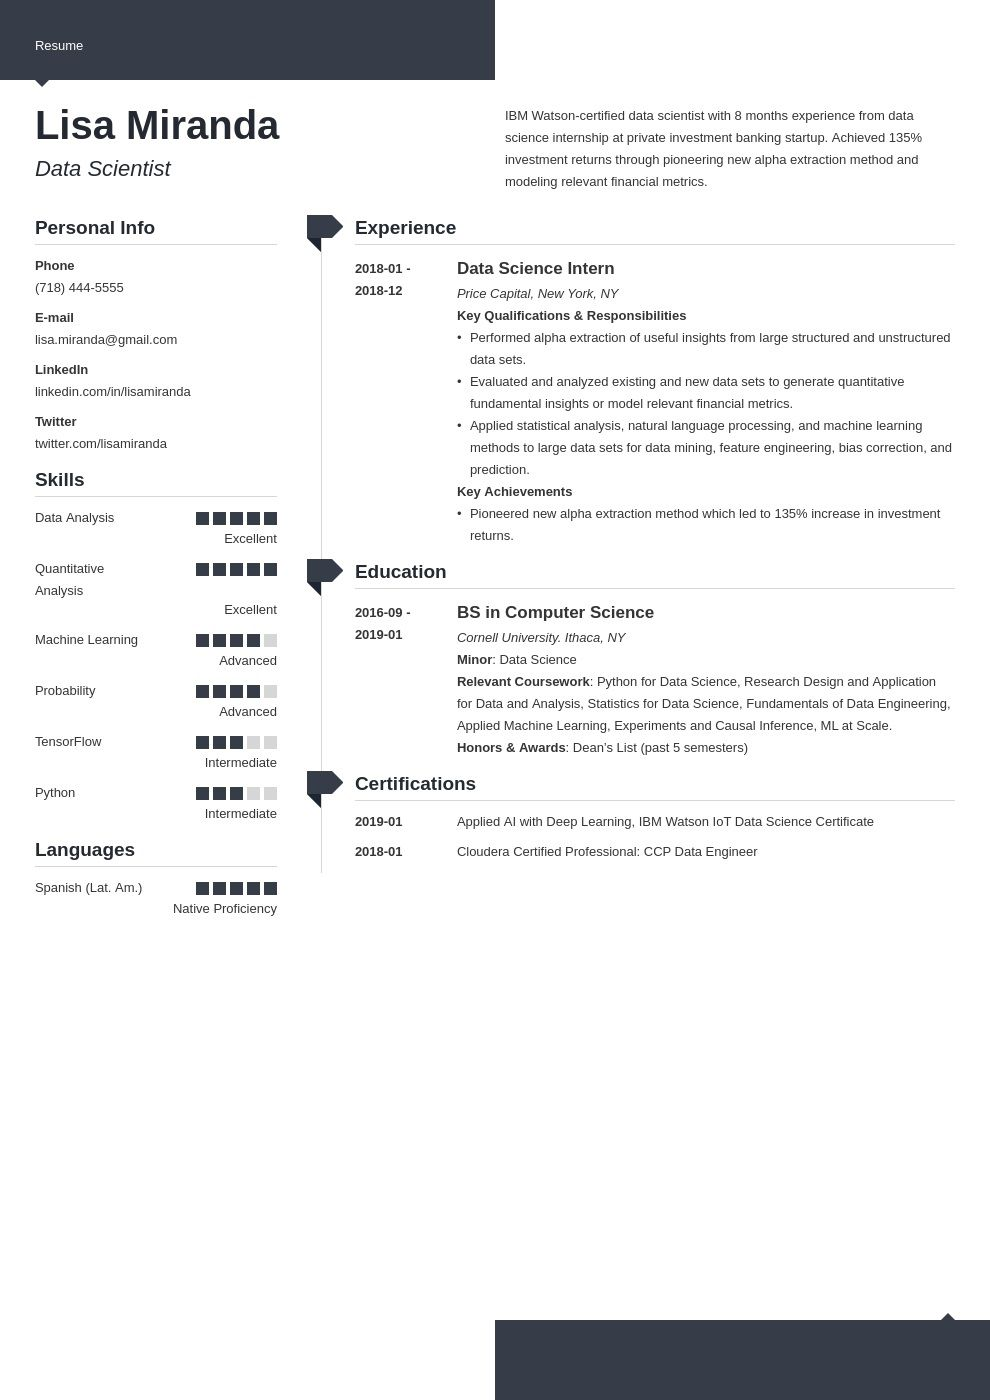 005 Incredible Recent College Graduate Resume Template Image  Word